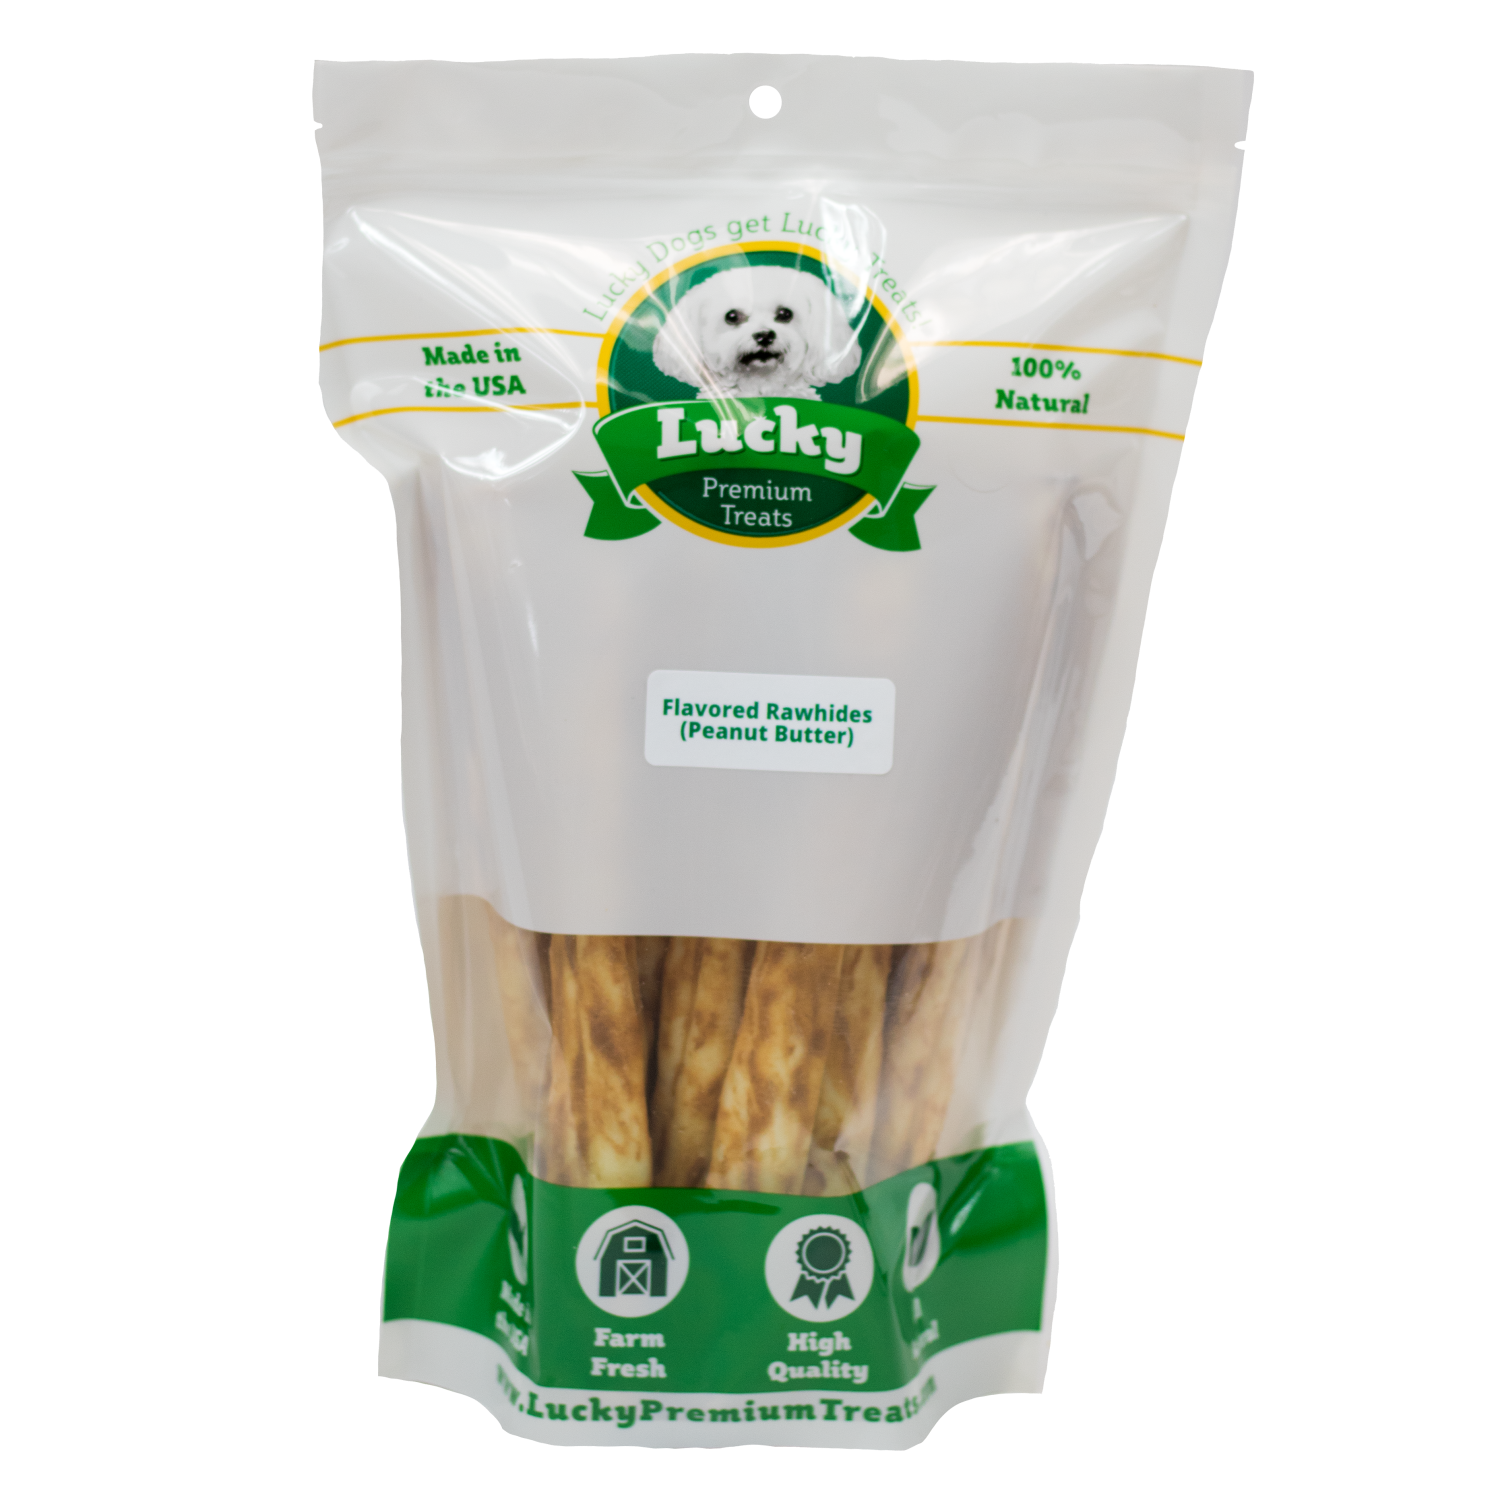 Lucky Premium Treats Peanut Butter Flavored Rawhide Retrievers Dog Treats for Large Dogs, Bag